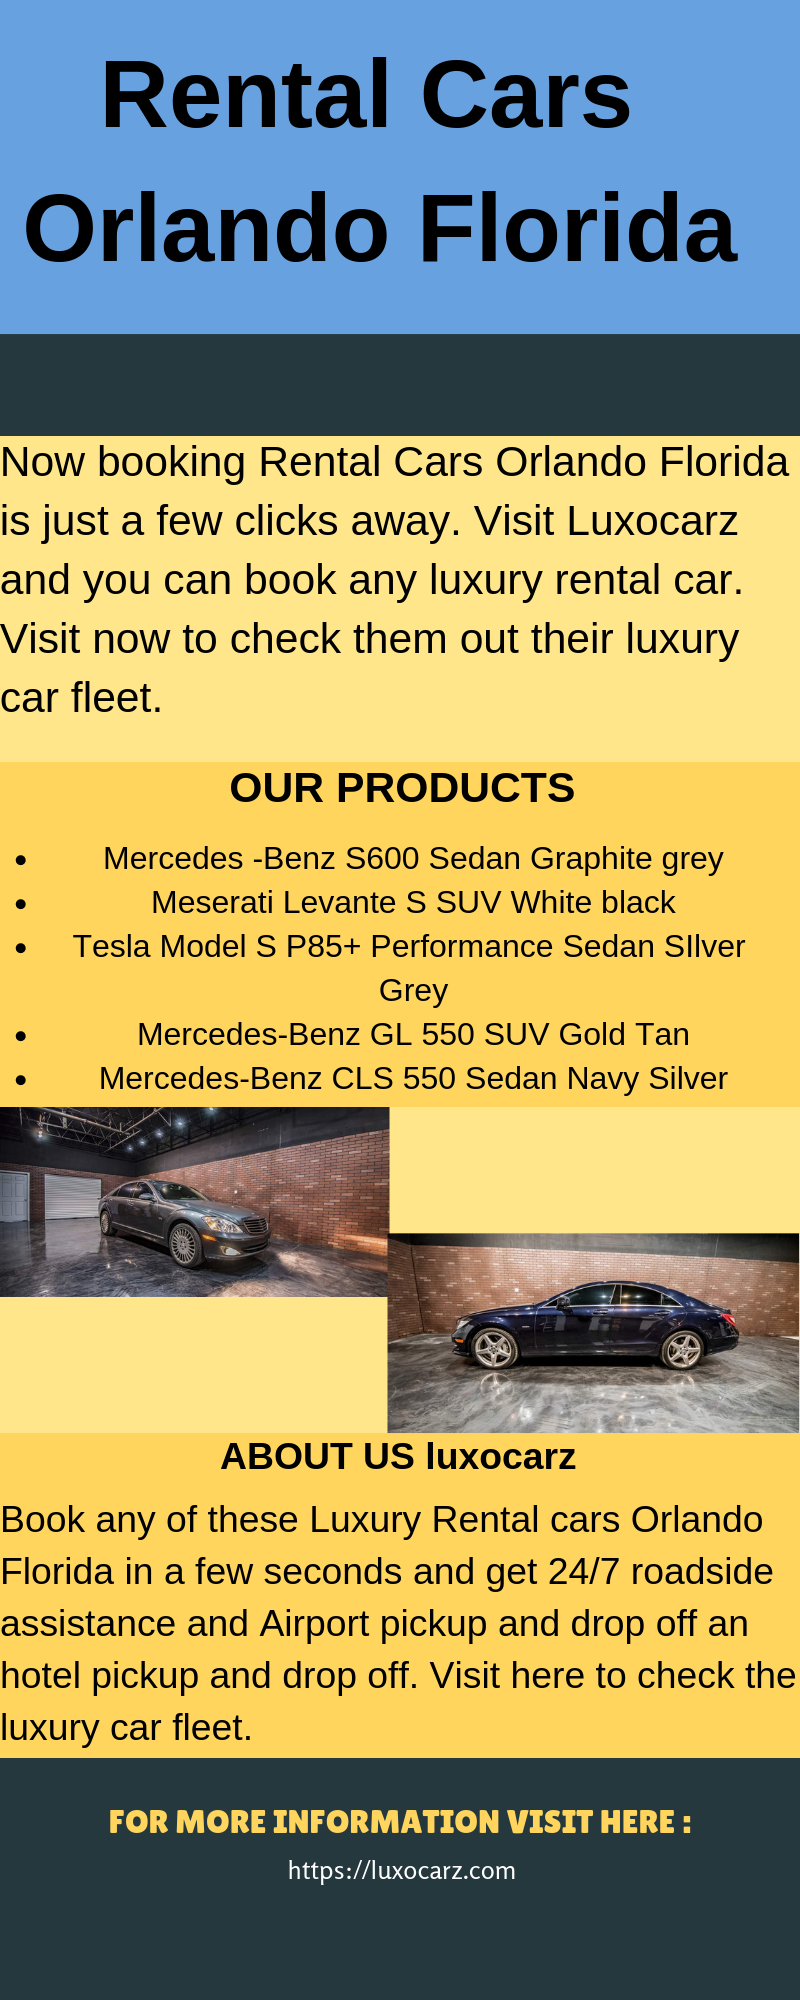 Now Booking Rental Cars Orlando Florida Is Just A Few Clicks Away Visit Luxocarz And You Can Book Any Luxury Rental Ca With Images Car Rental Book Rentals Orlando Florida